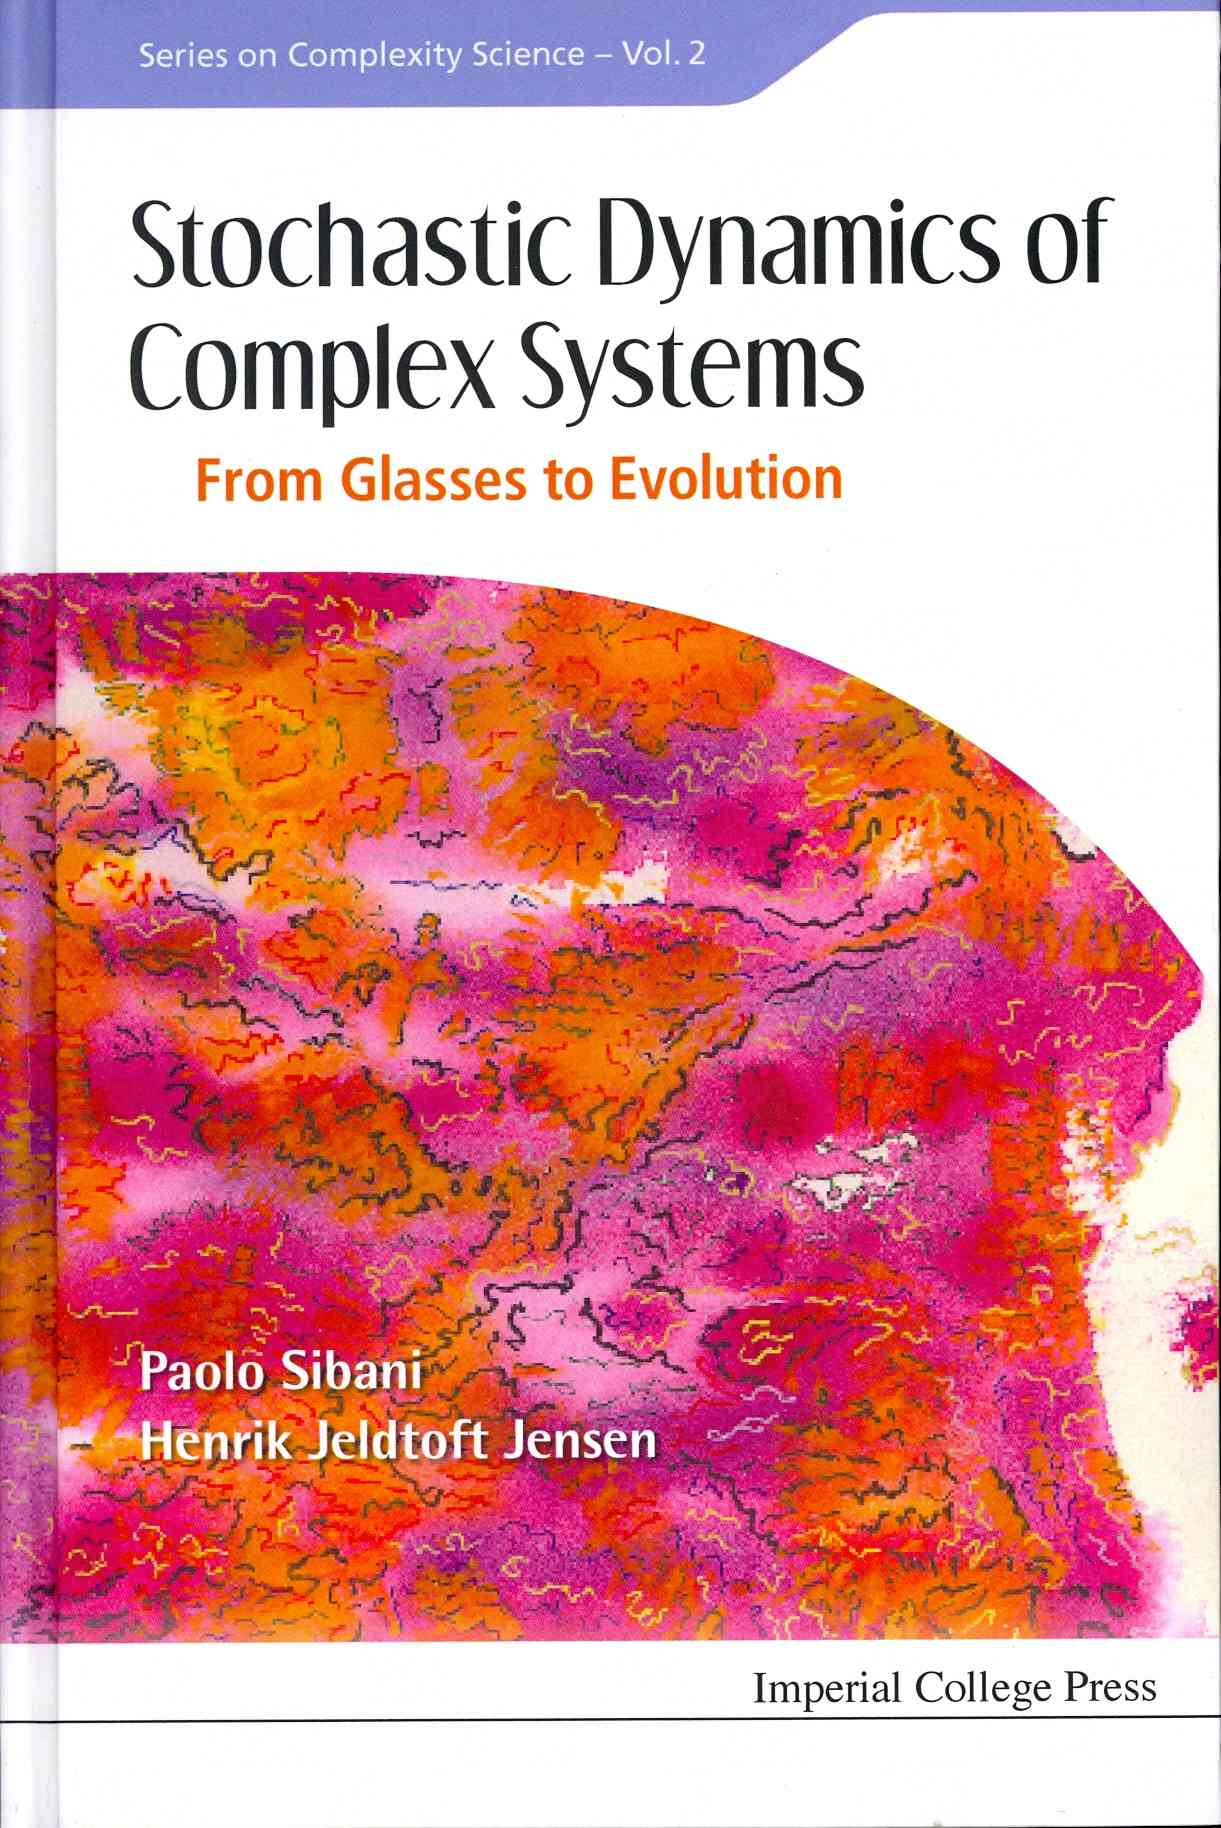 Imperial College Press Stochastic Dynamics of Complex Systems: From Glasses to Evolution (New Edition) by Sibani, Paolo/ Jensen, Henrik Jeldtoft [Hardc at Sears.com